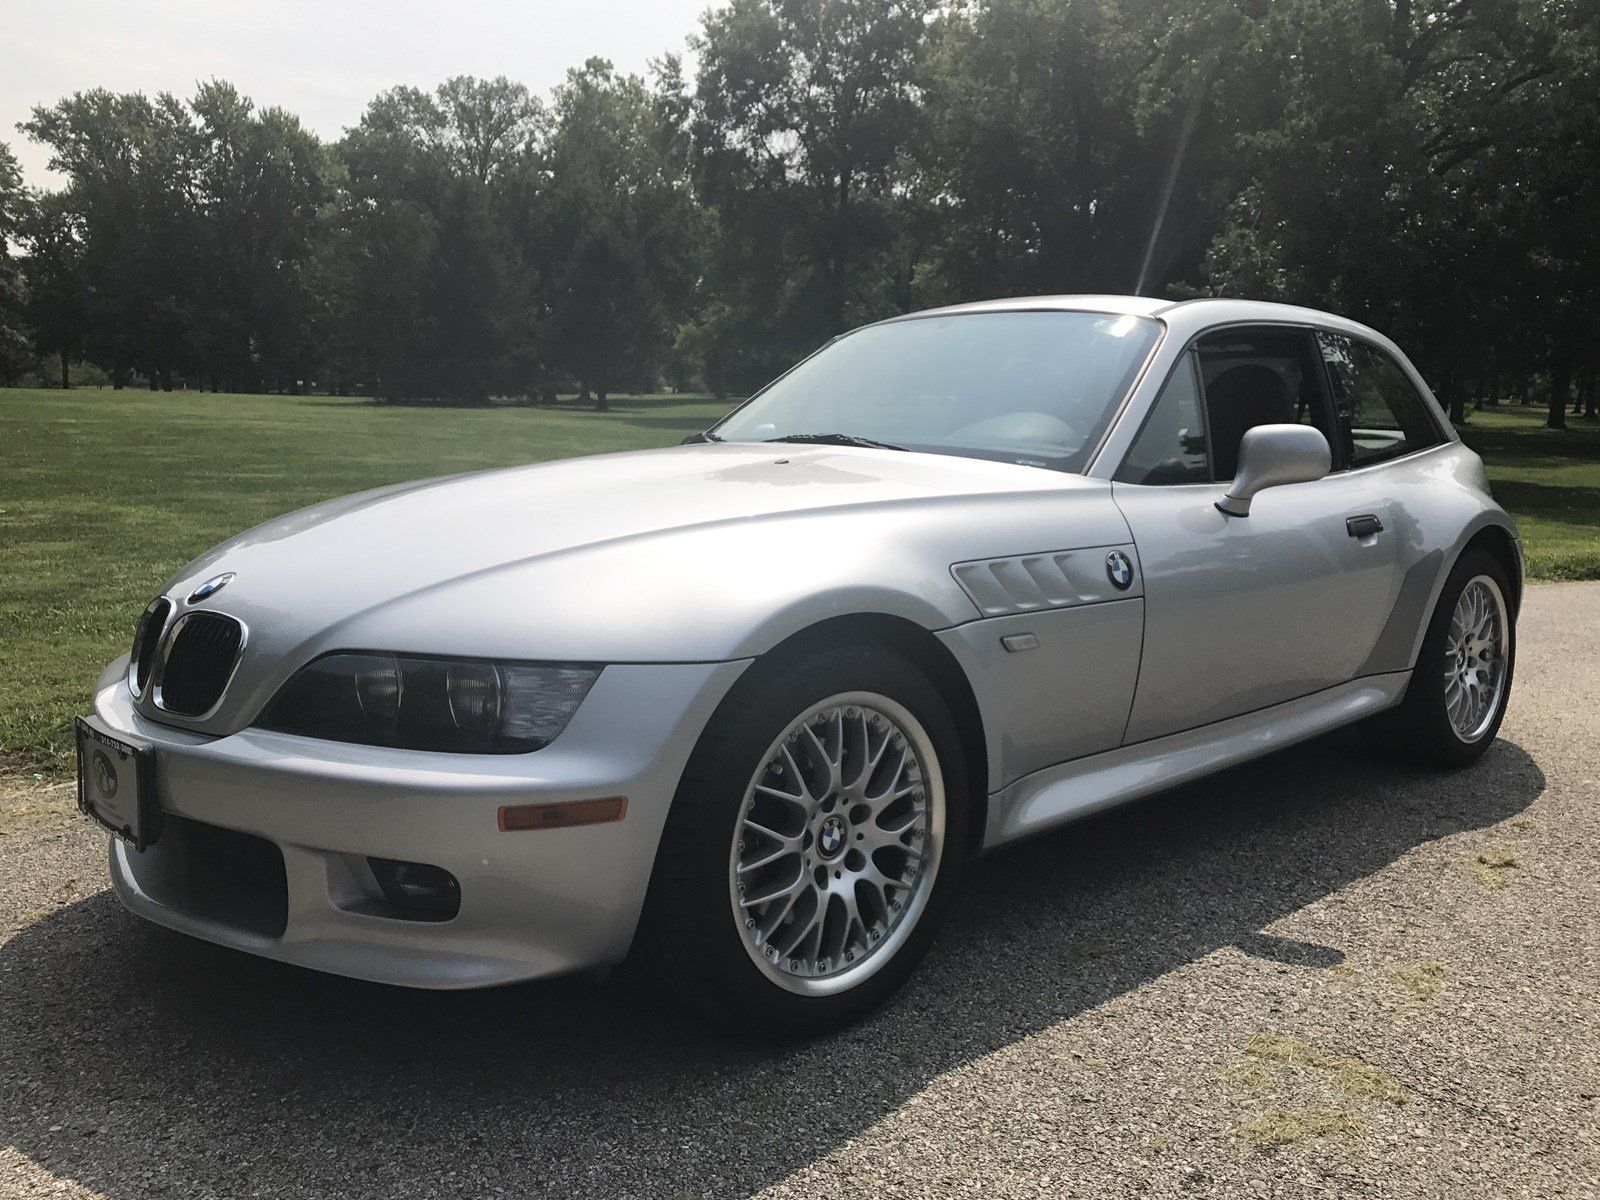 2001 BMW Z3 Coupe---Titanium Silver Metallic w/ Black Leather---5 speed  manual---Aluminum Look Interior Trim---Power Moonroof---Heated front  seats---In-dash ...